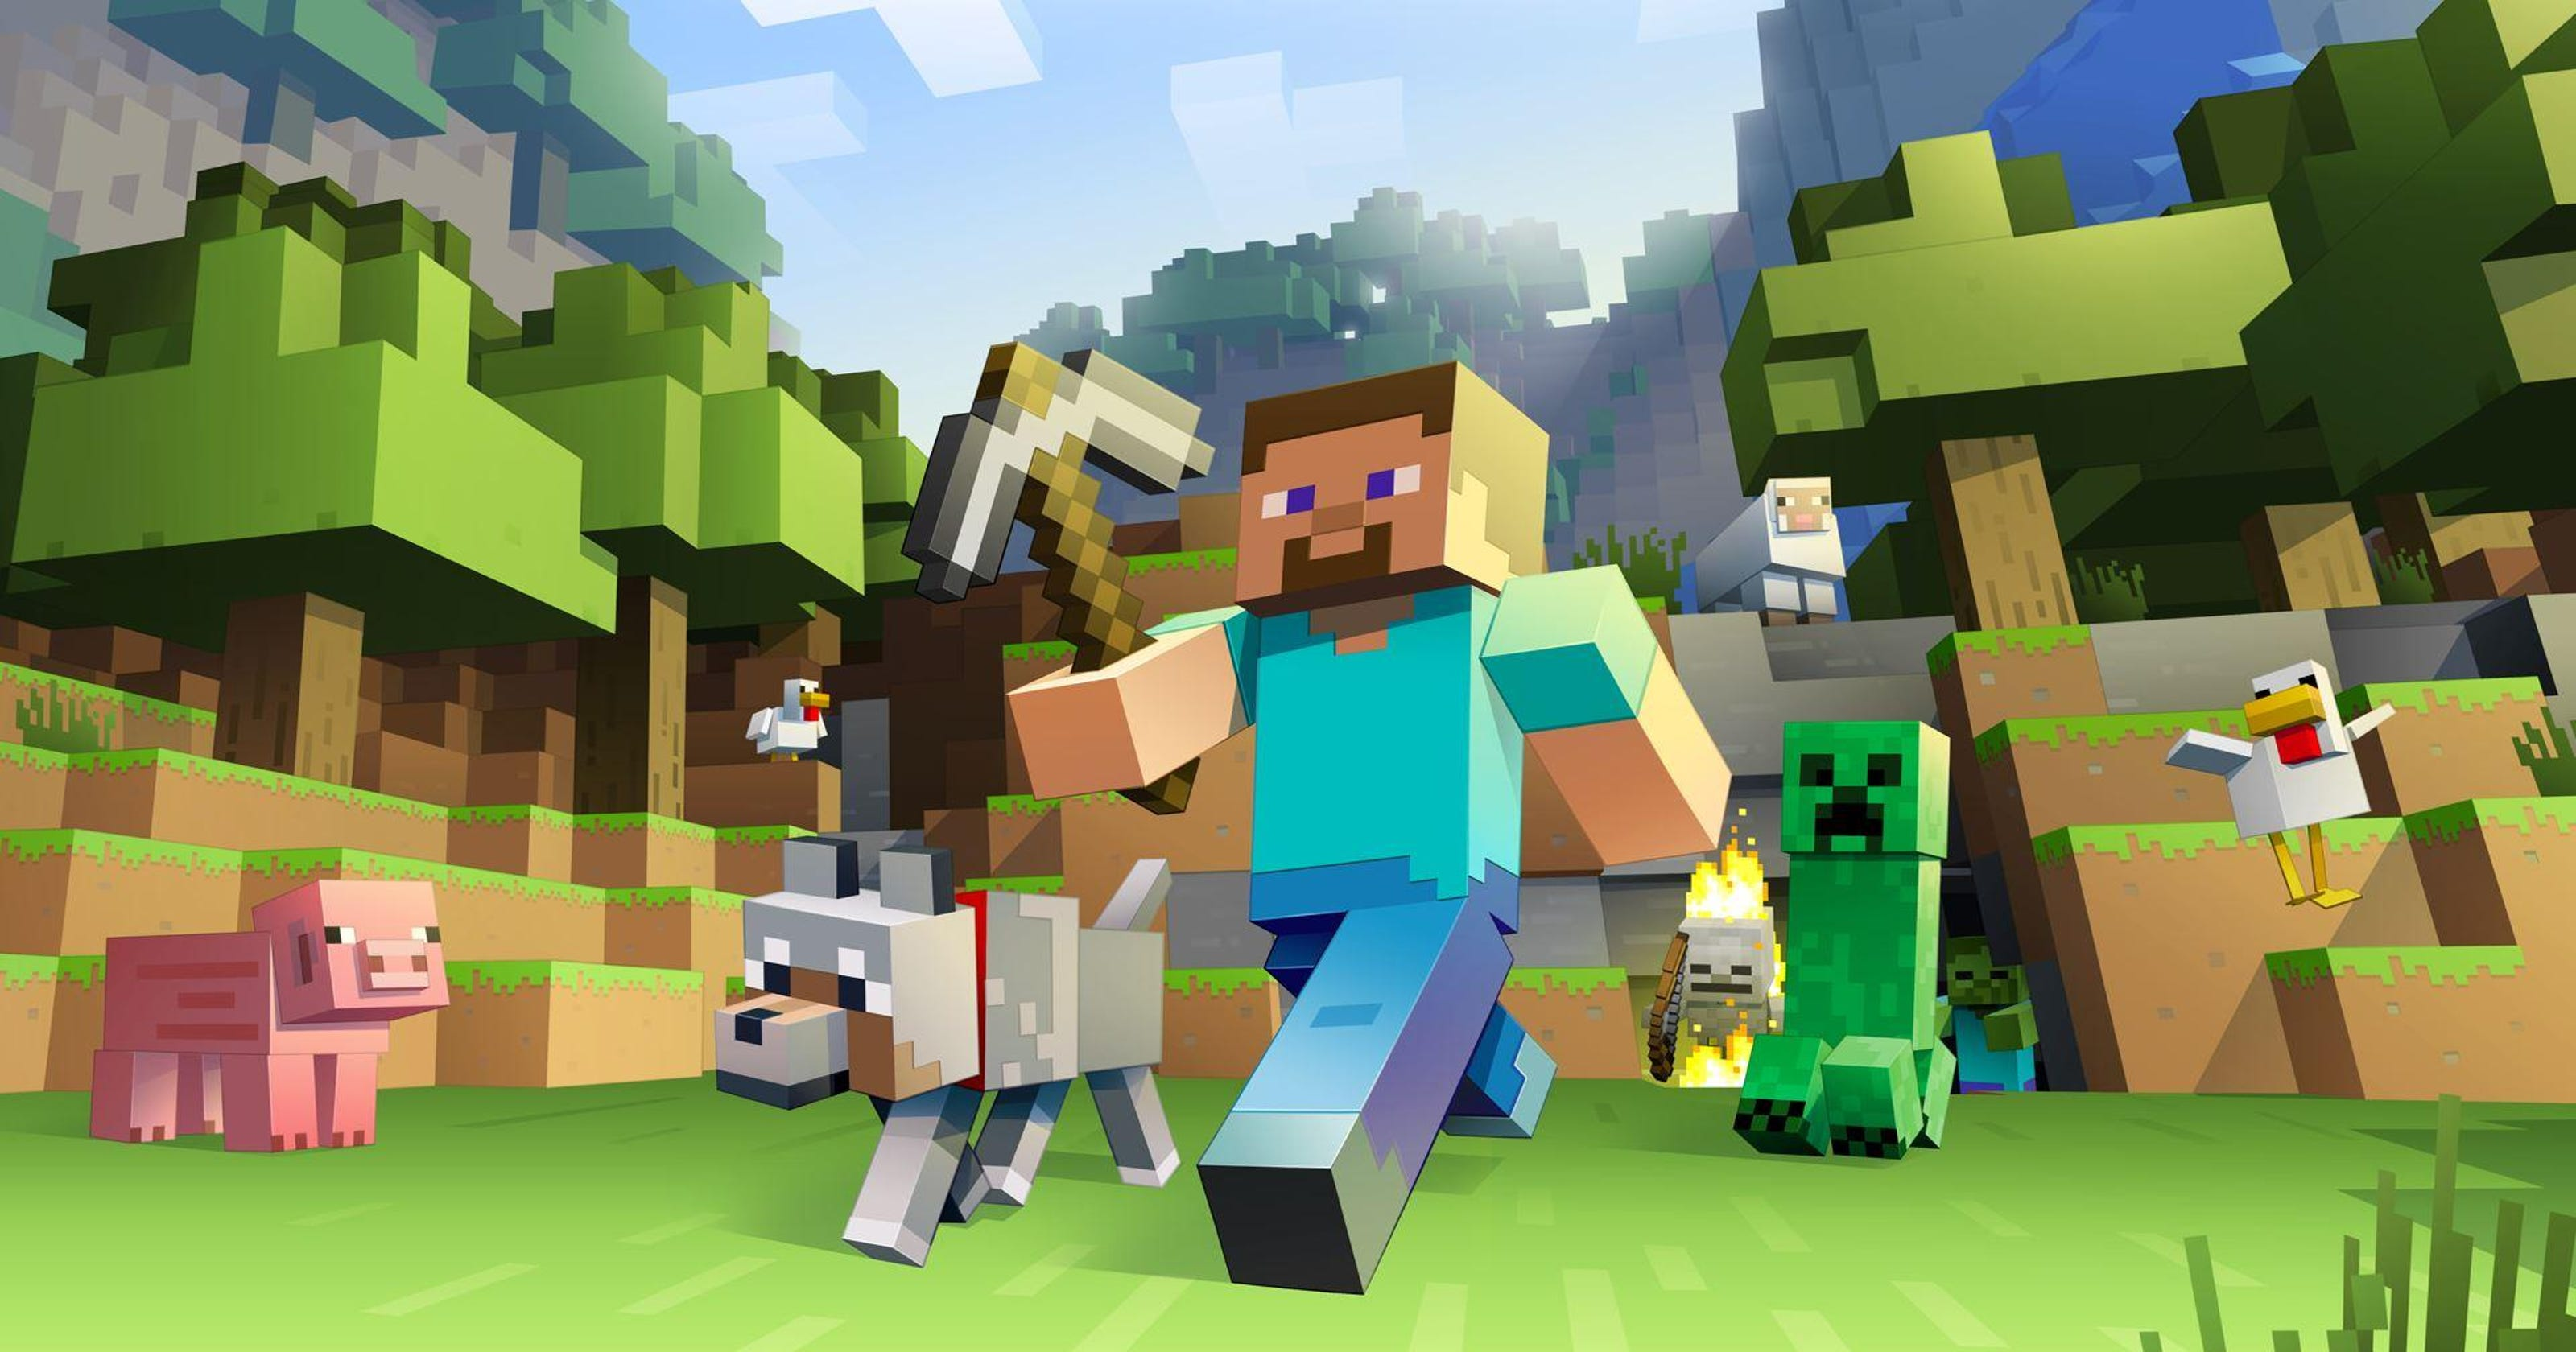 Is Minecraft good or bad for kids?